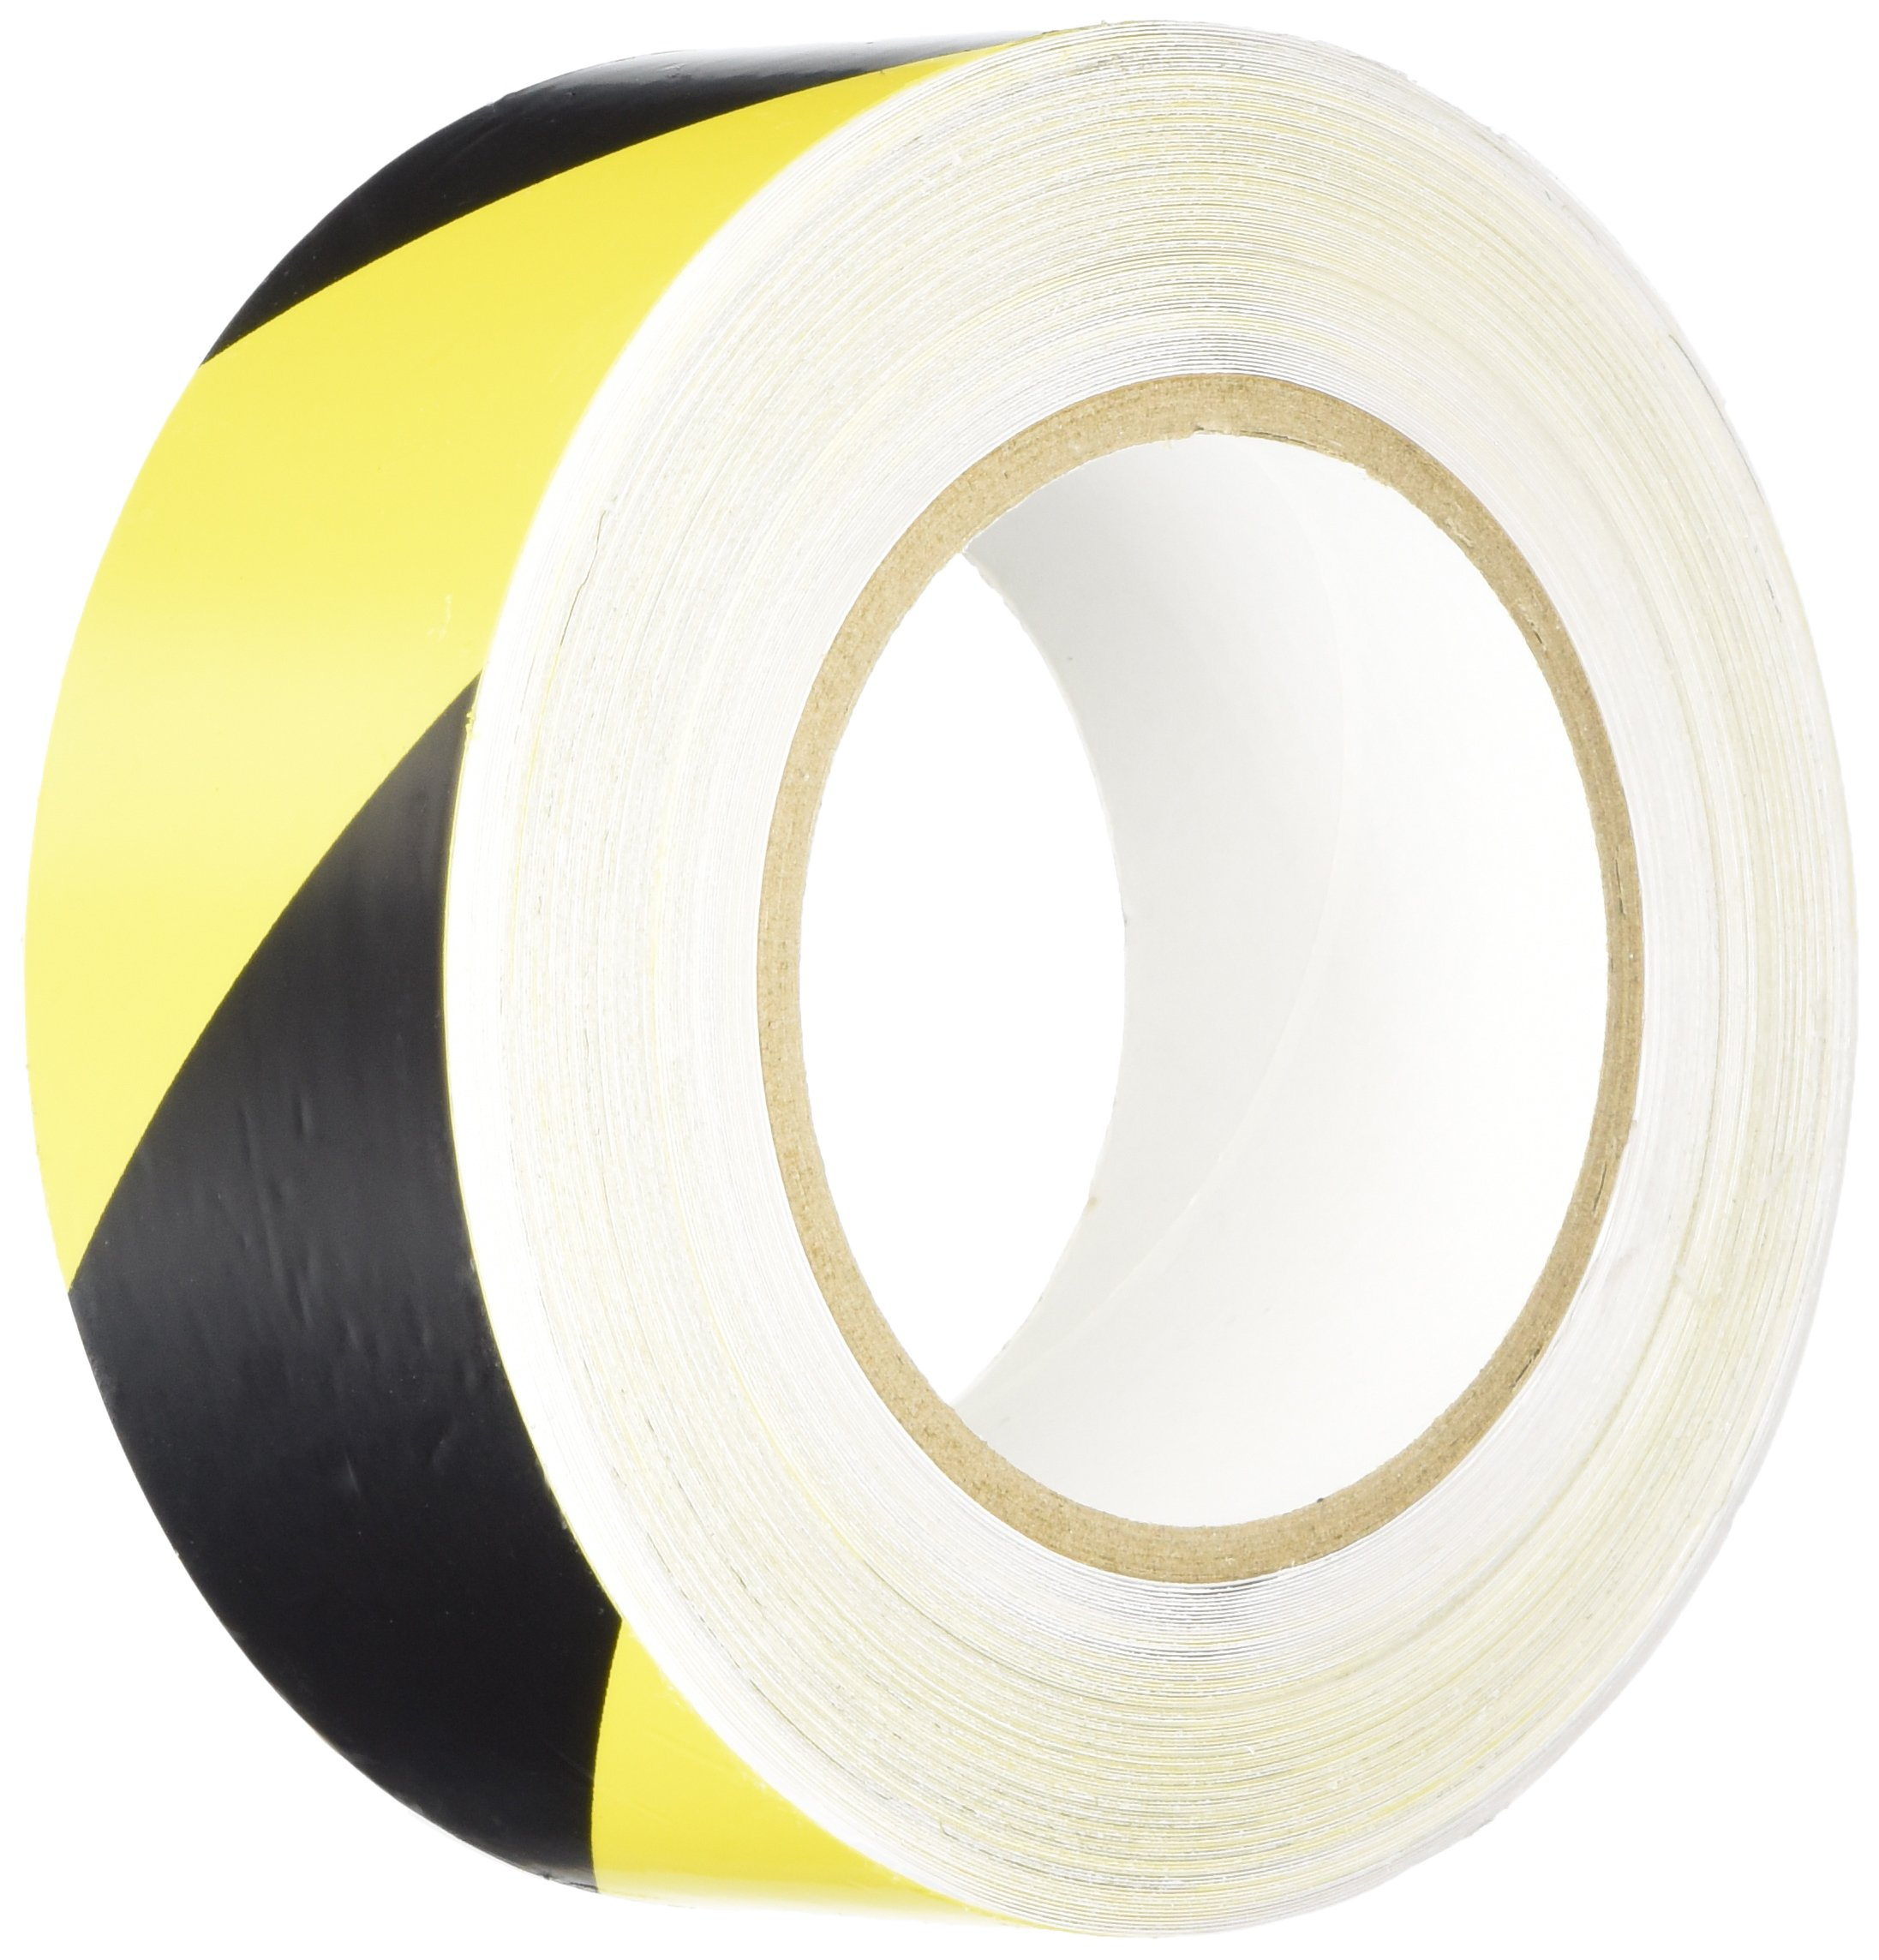 showroom at com suppliers and alibaba pvc manufacturers floor tape marking tapes industrial floors adhesive